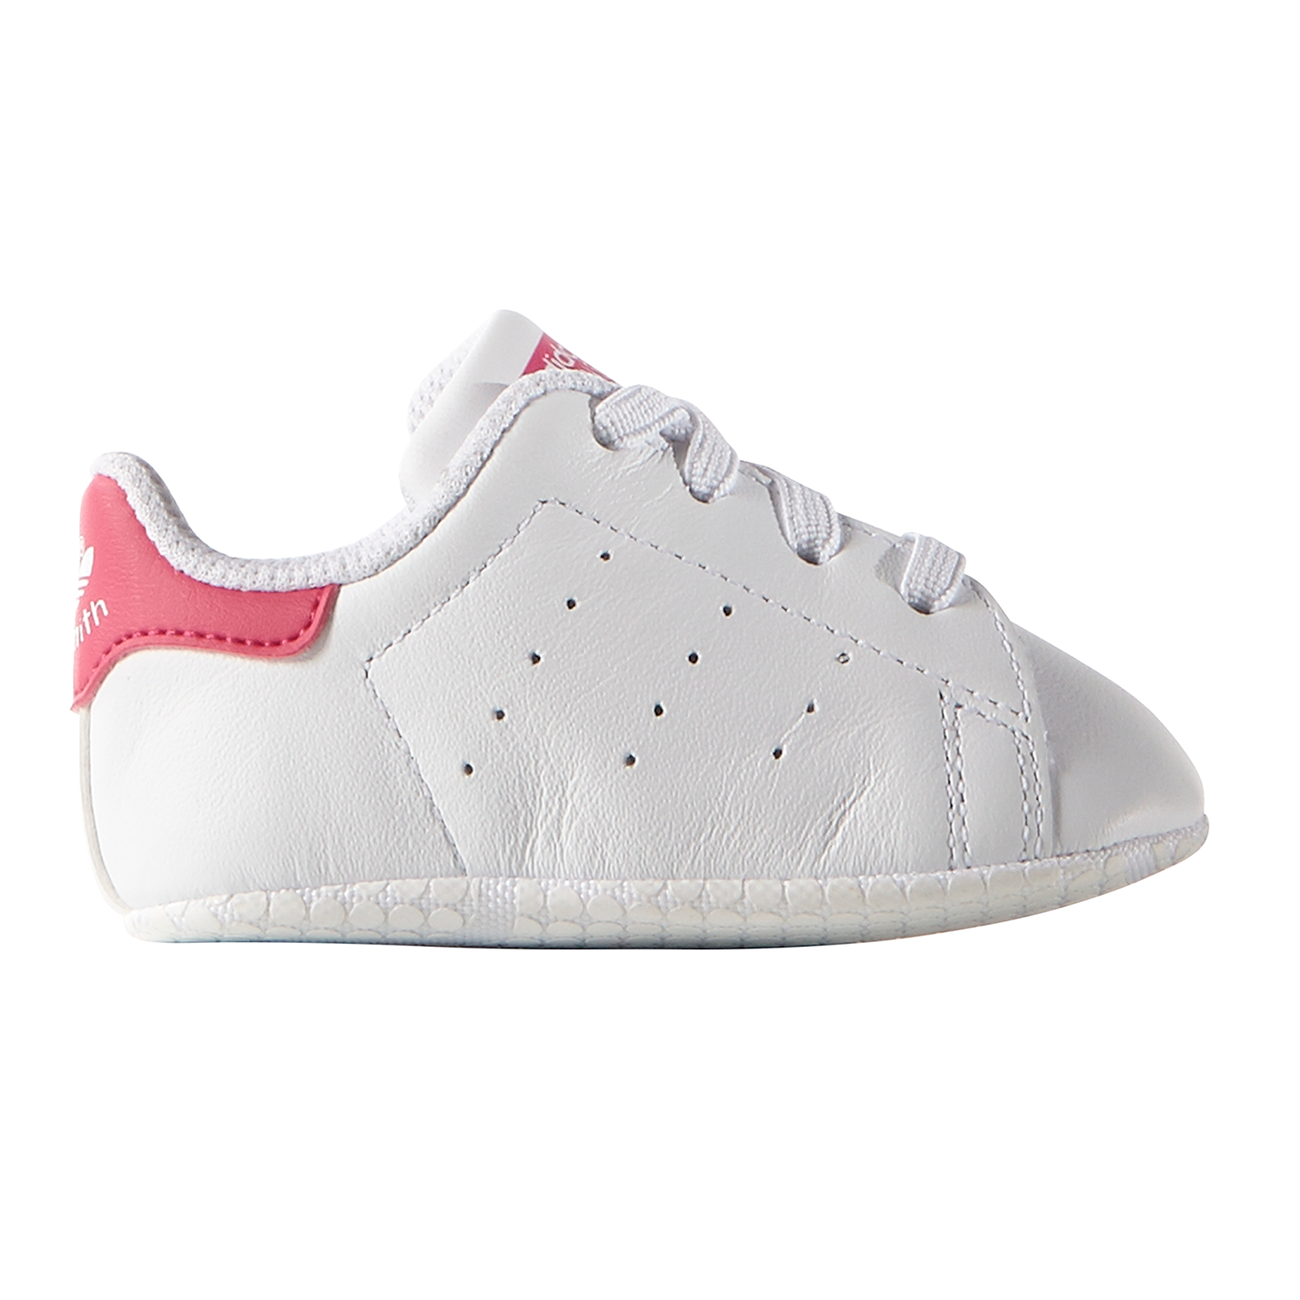 adidas Baby Stan Smith Sneakers WhitePink S82618